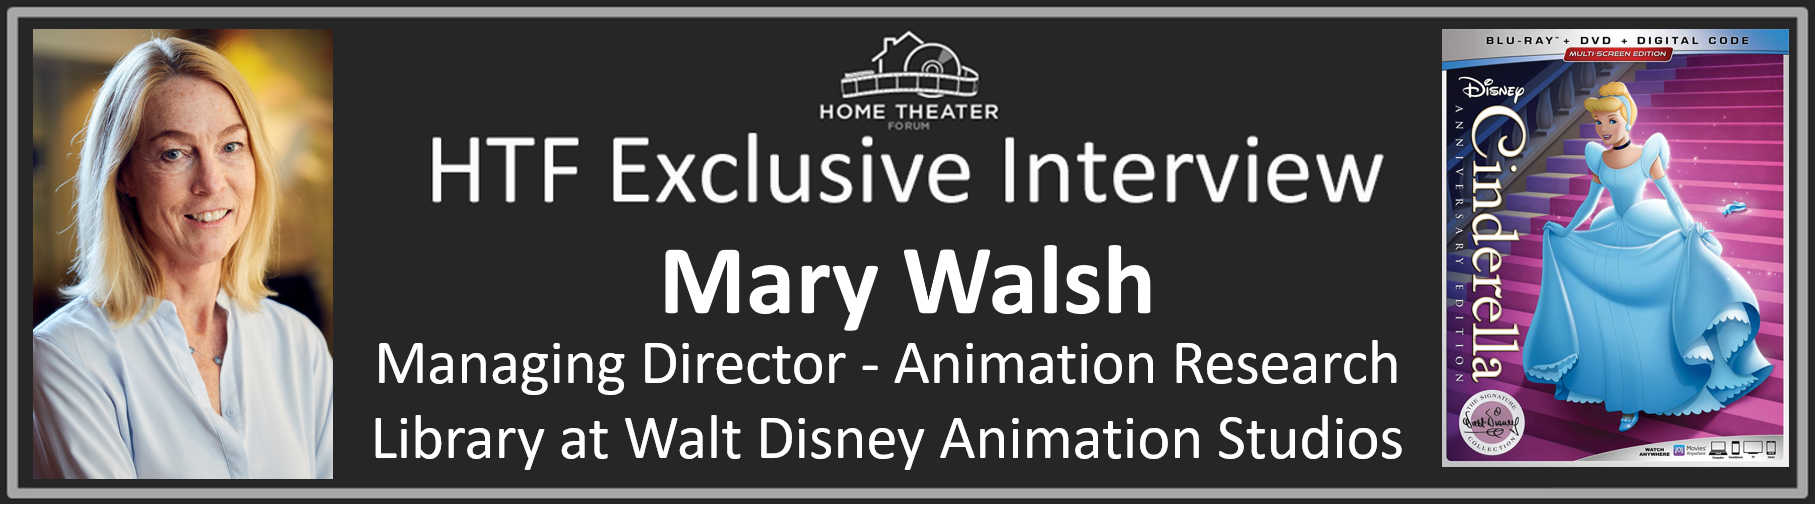 HTF_Interview_Mary_Walsh.